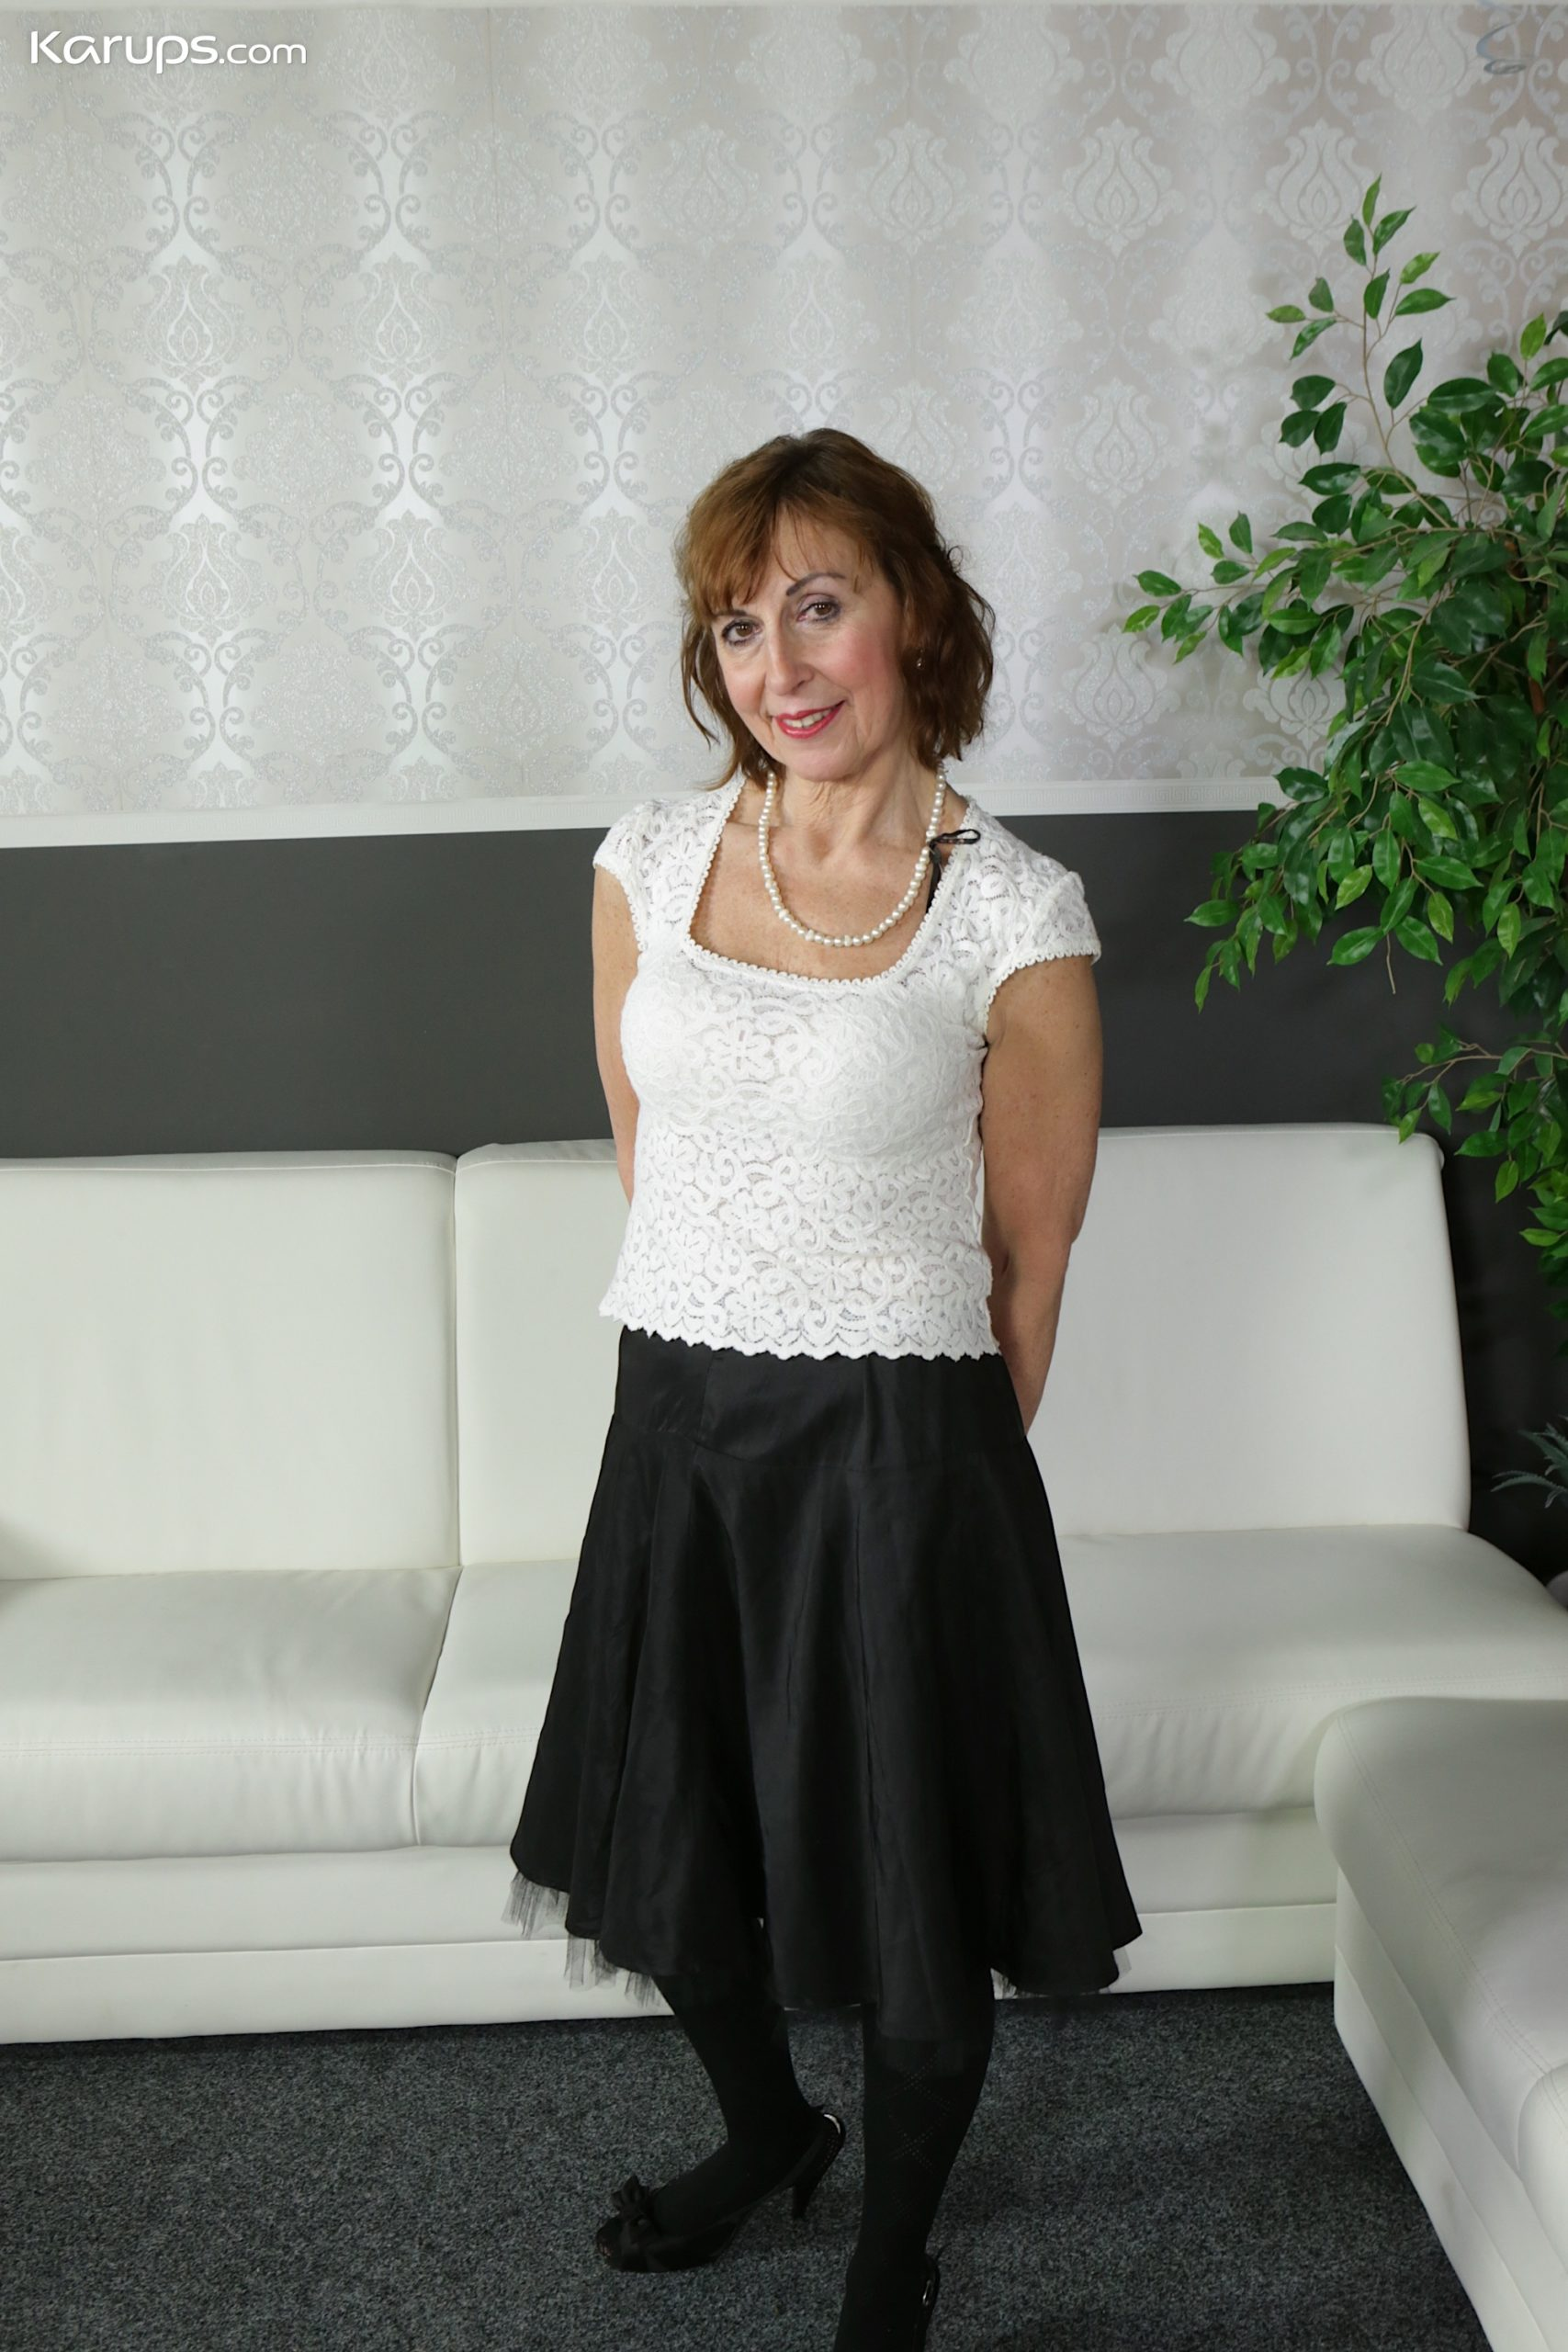 Older mature amateur Amy D naked in only black stockings. from Karupsow